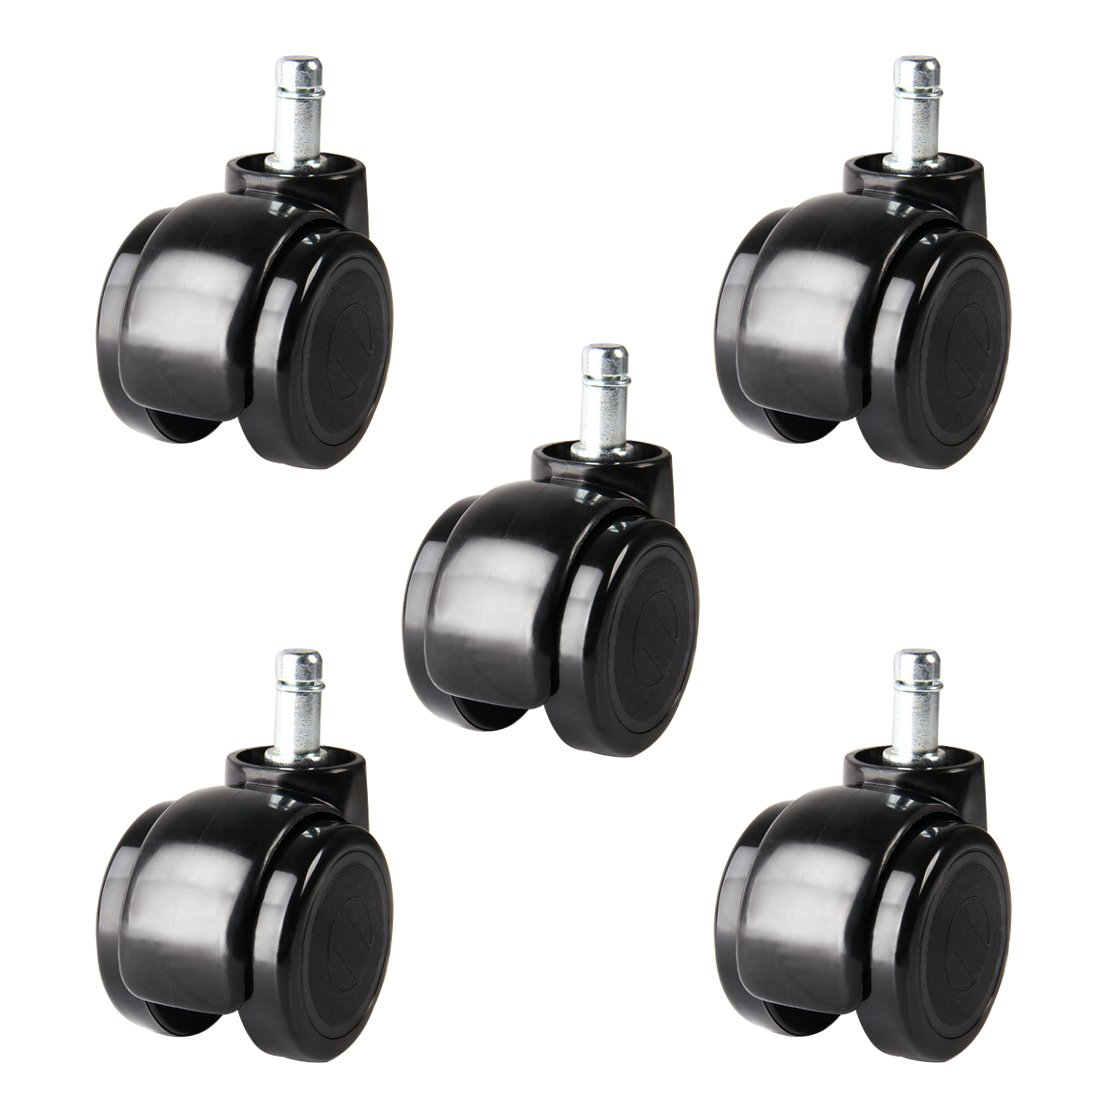 Adiyer [Set of 5] 2-inch Office Chair Caster Wheel for IKEA Chair, 10mm x 22mm Swivel Stem Casters, Polyurethane Wheels, 100 Lbs Per Caster, Black